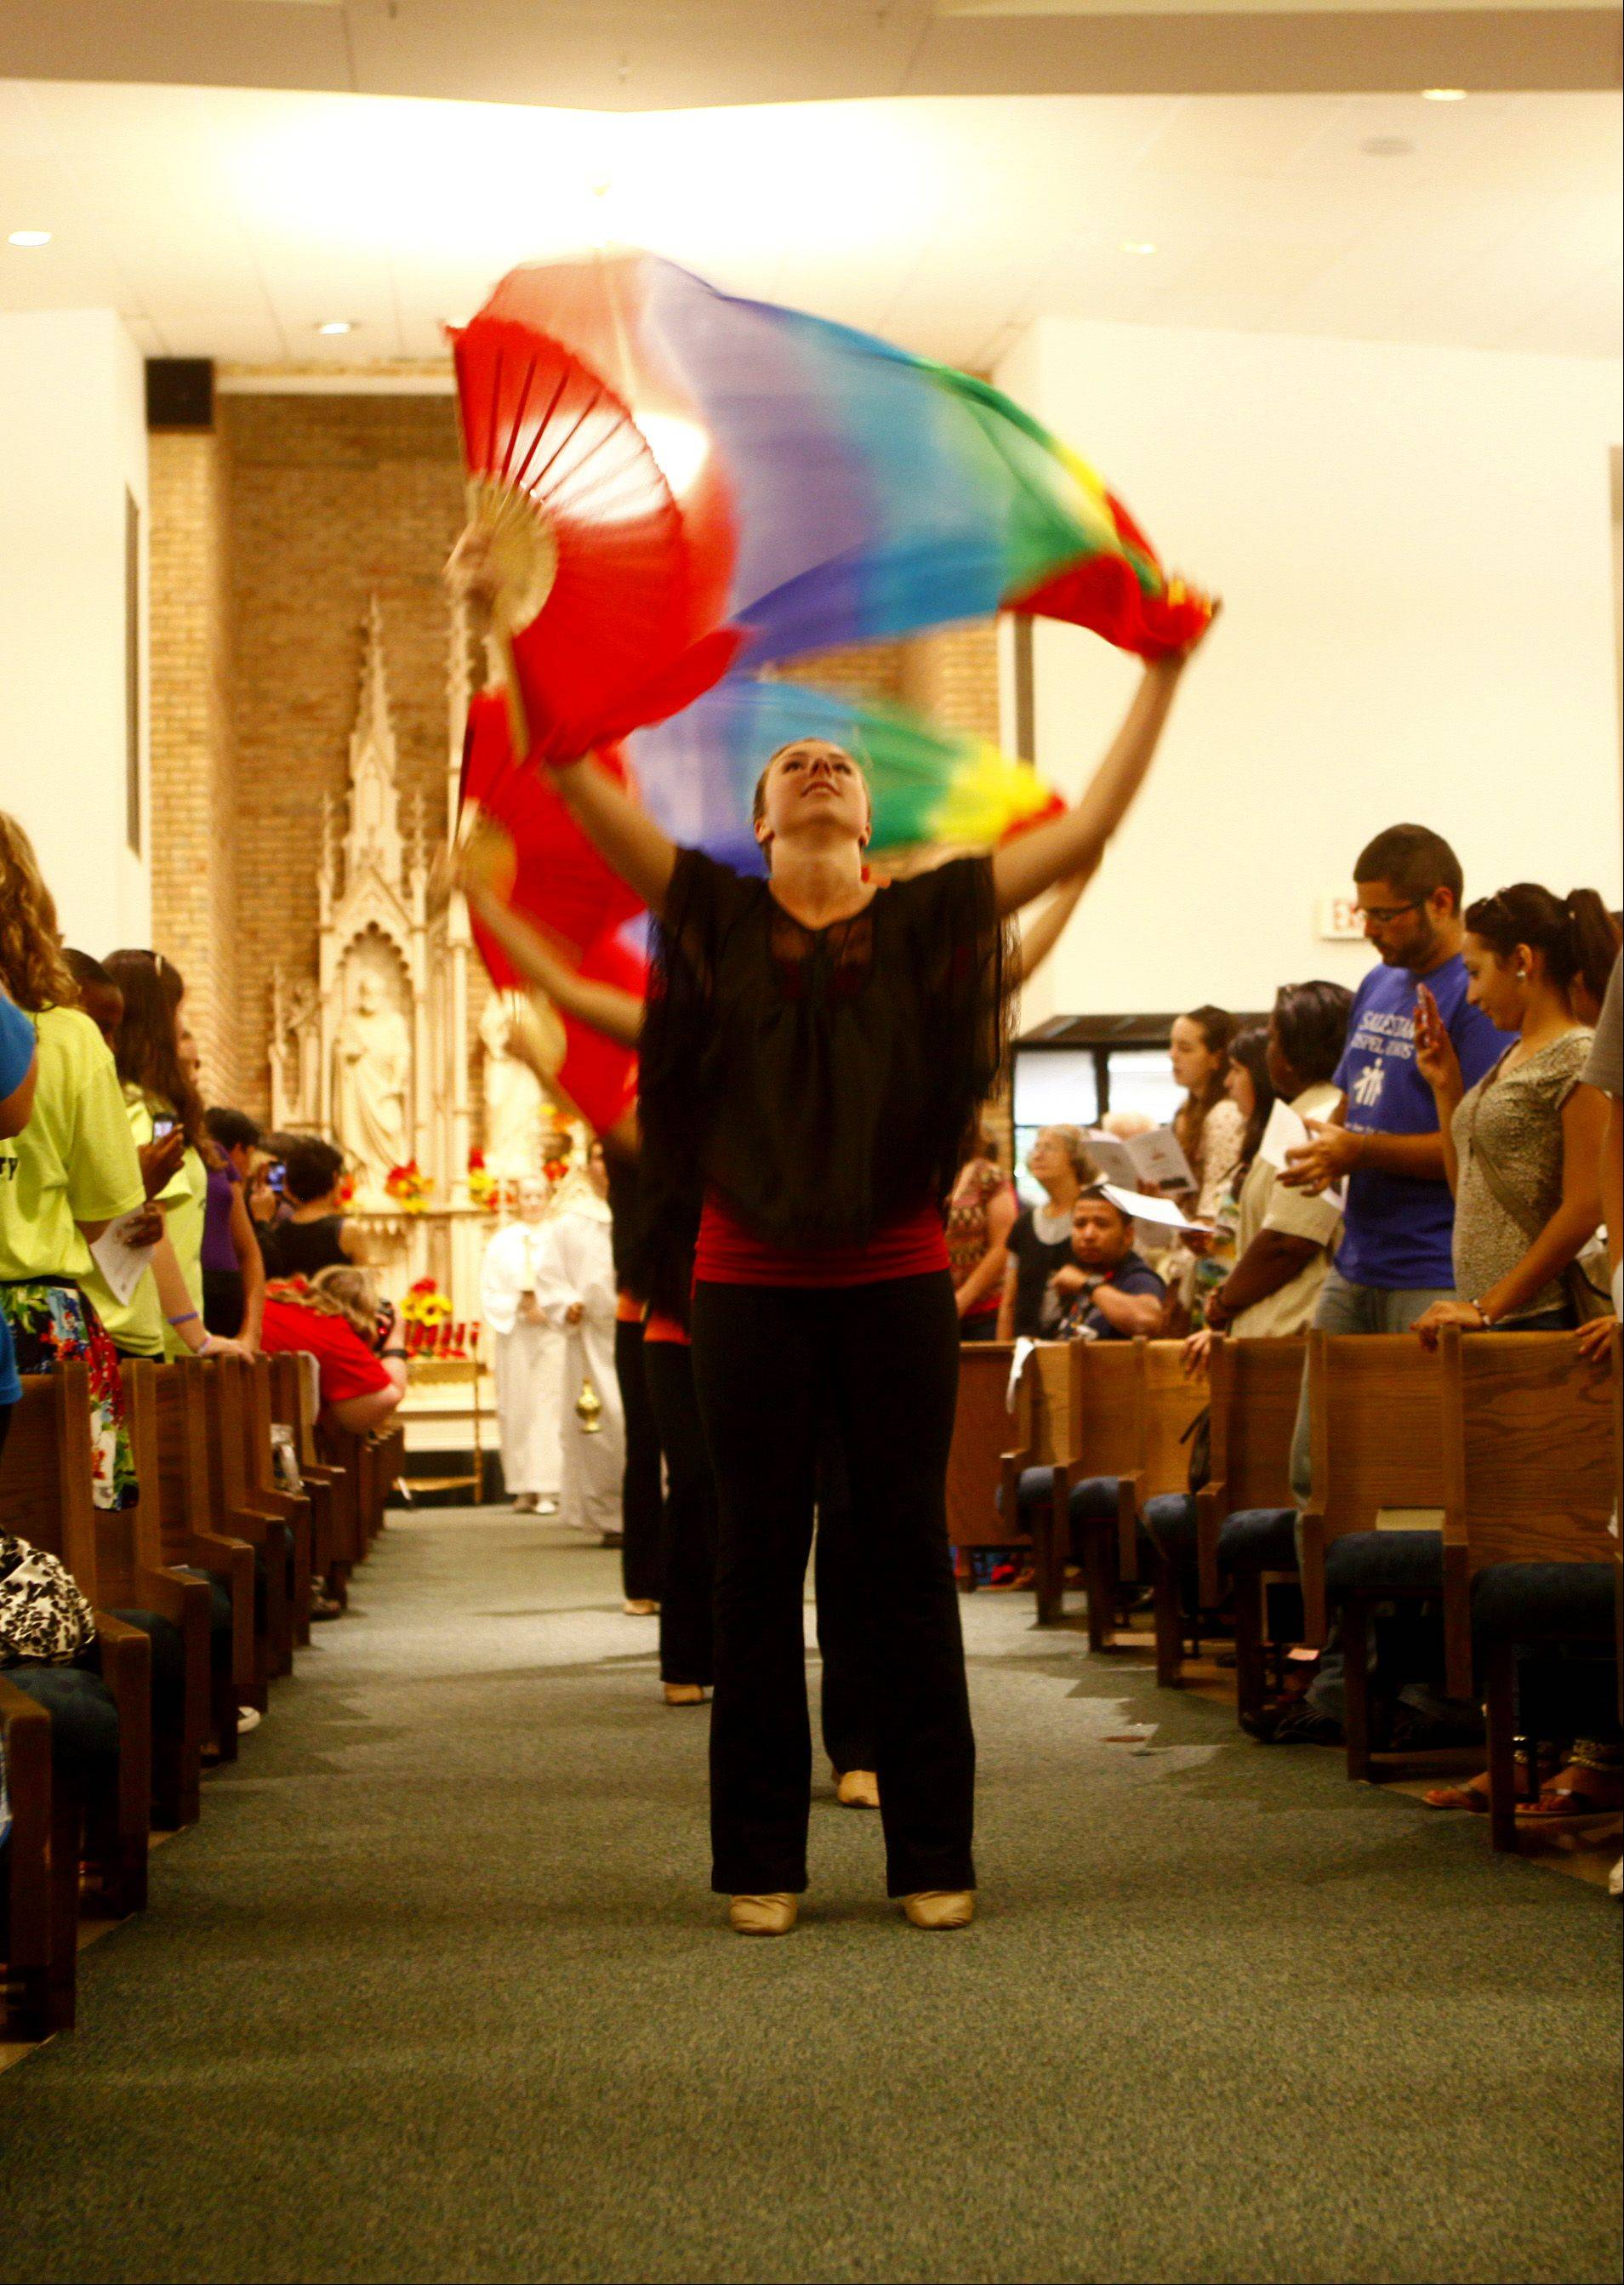 Ella Smoot, 18, of Kildeer participates in the processional dance at the beginning of a special Mass Friday night at St. Mary Parish in Buffalo Grove.